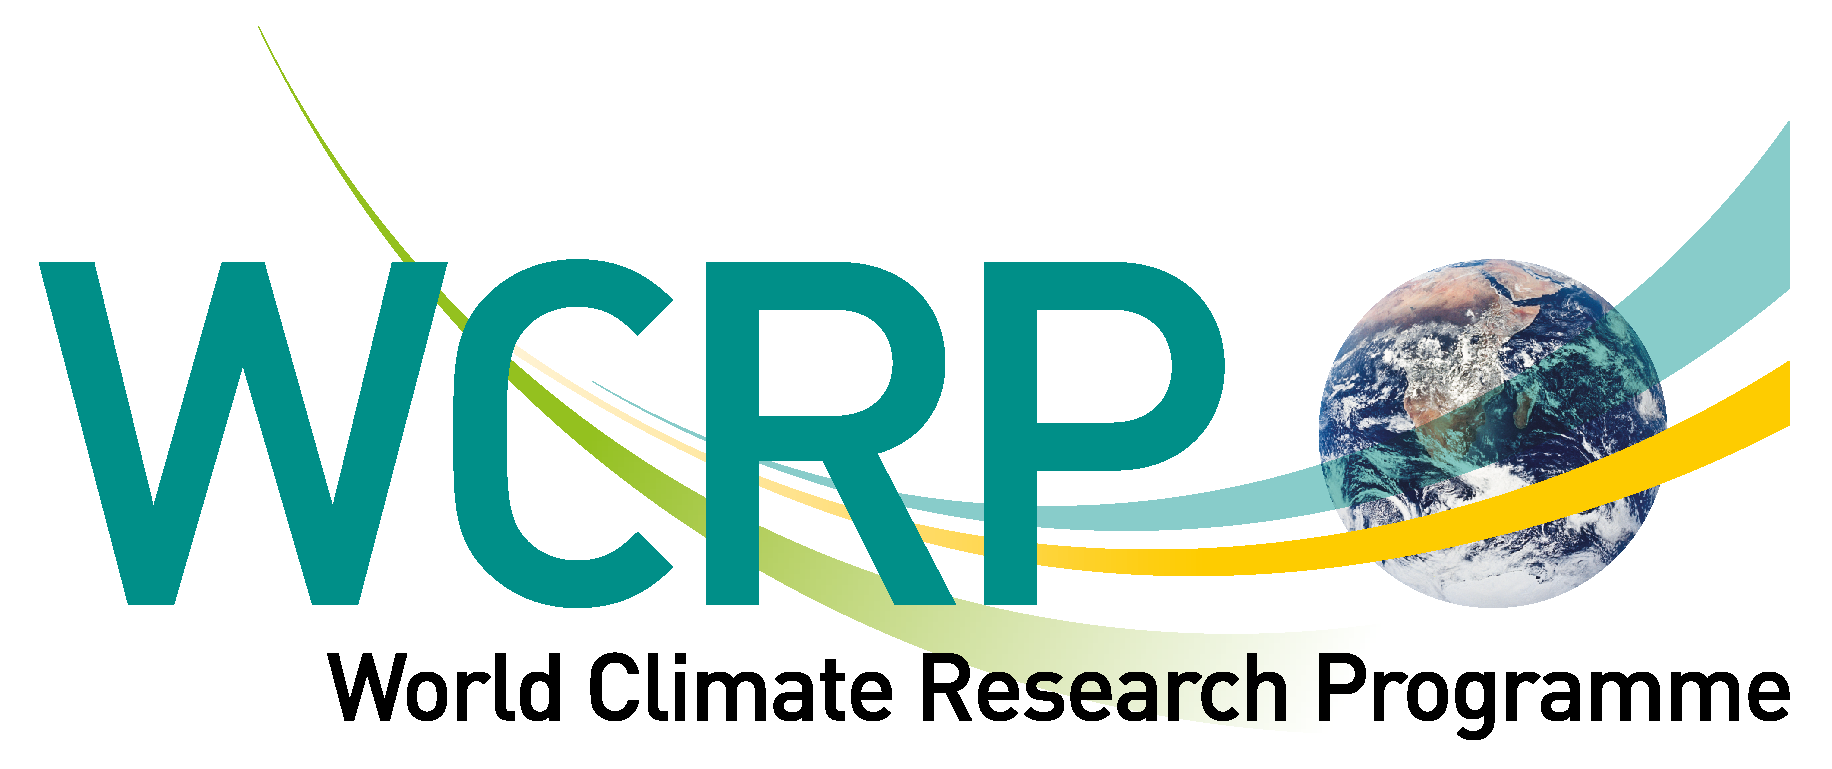 WCRP-logo-for-white-background.png